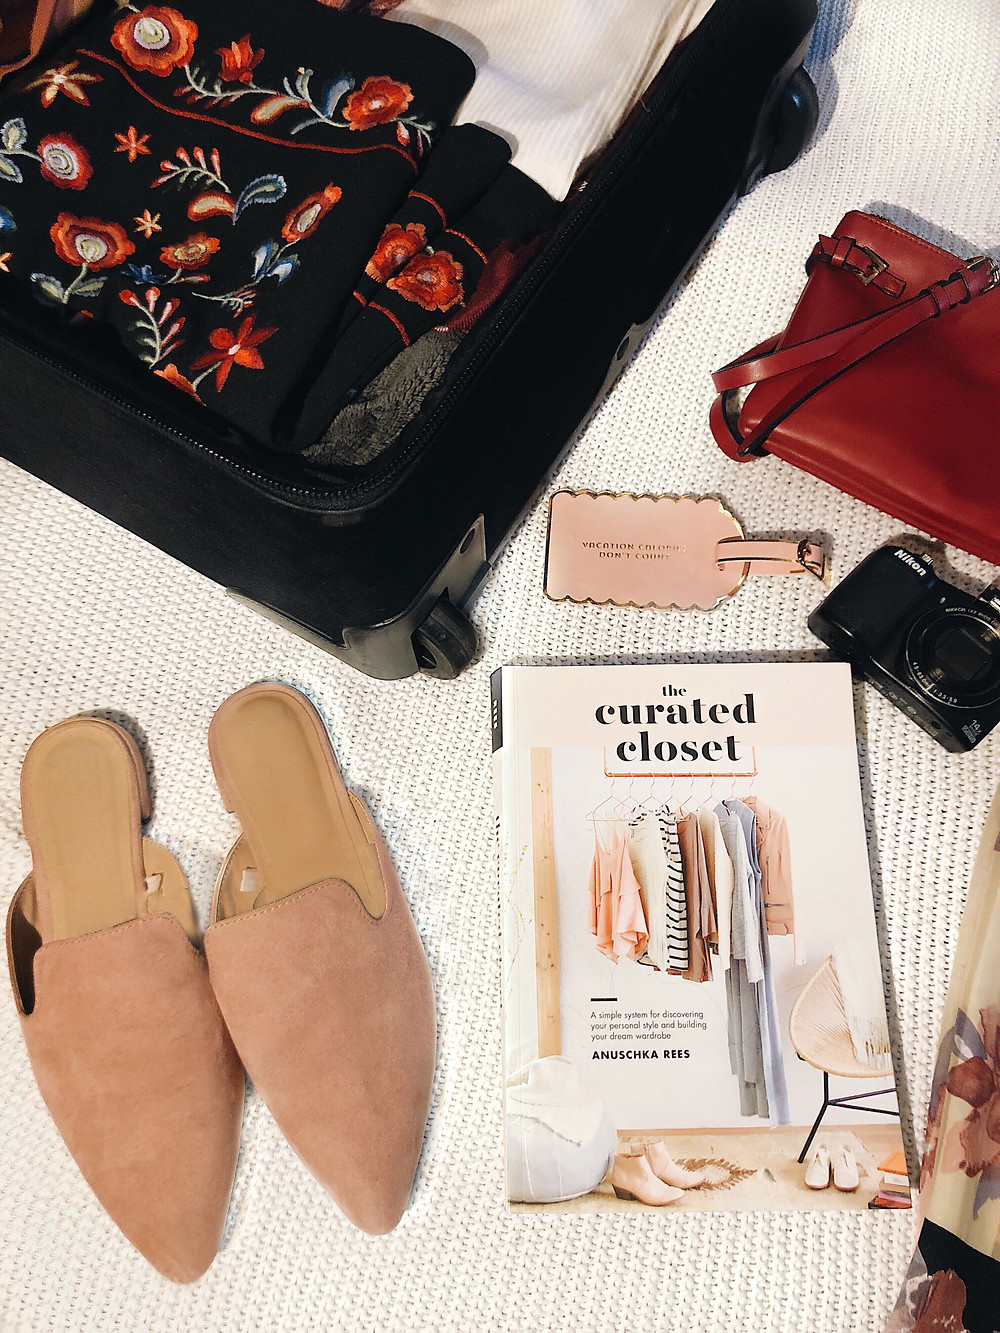 Travel, suitcase, packing